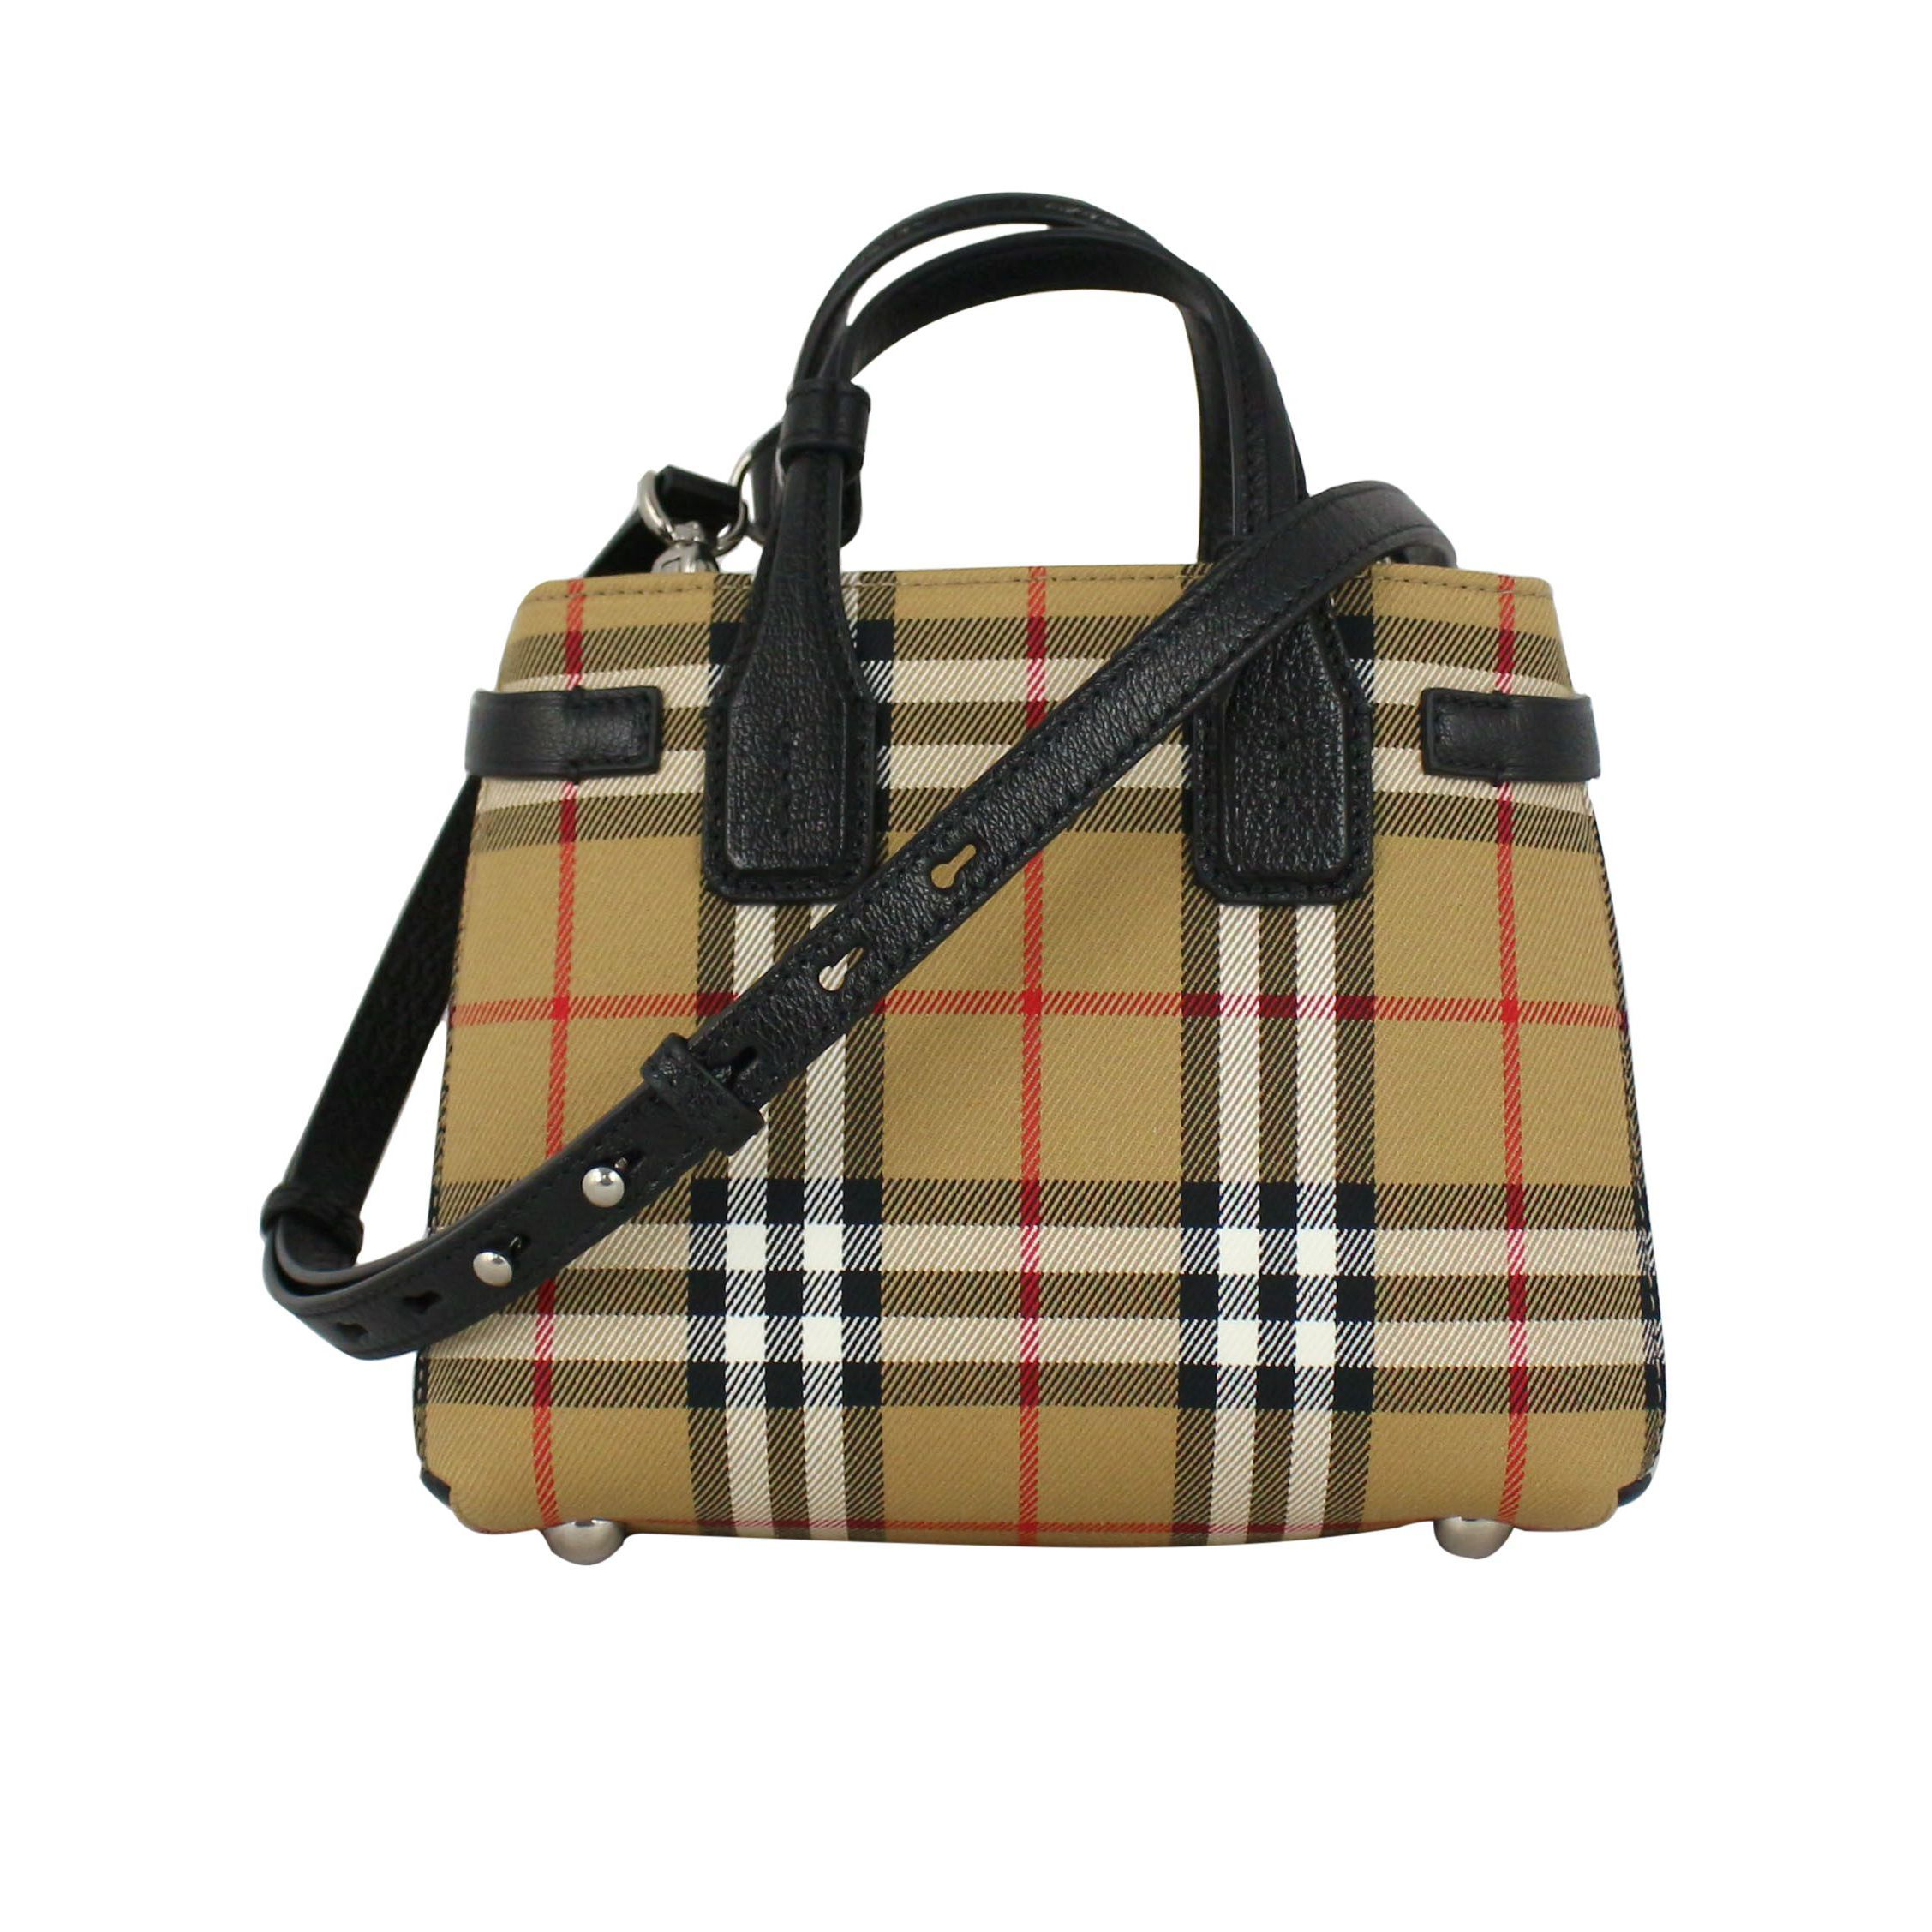 6ac7787b2fd1 Baby Banner bag in canvas Check / black, Burberry 4079964 ...